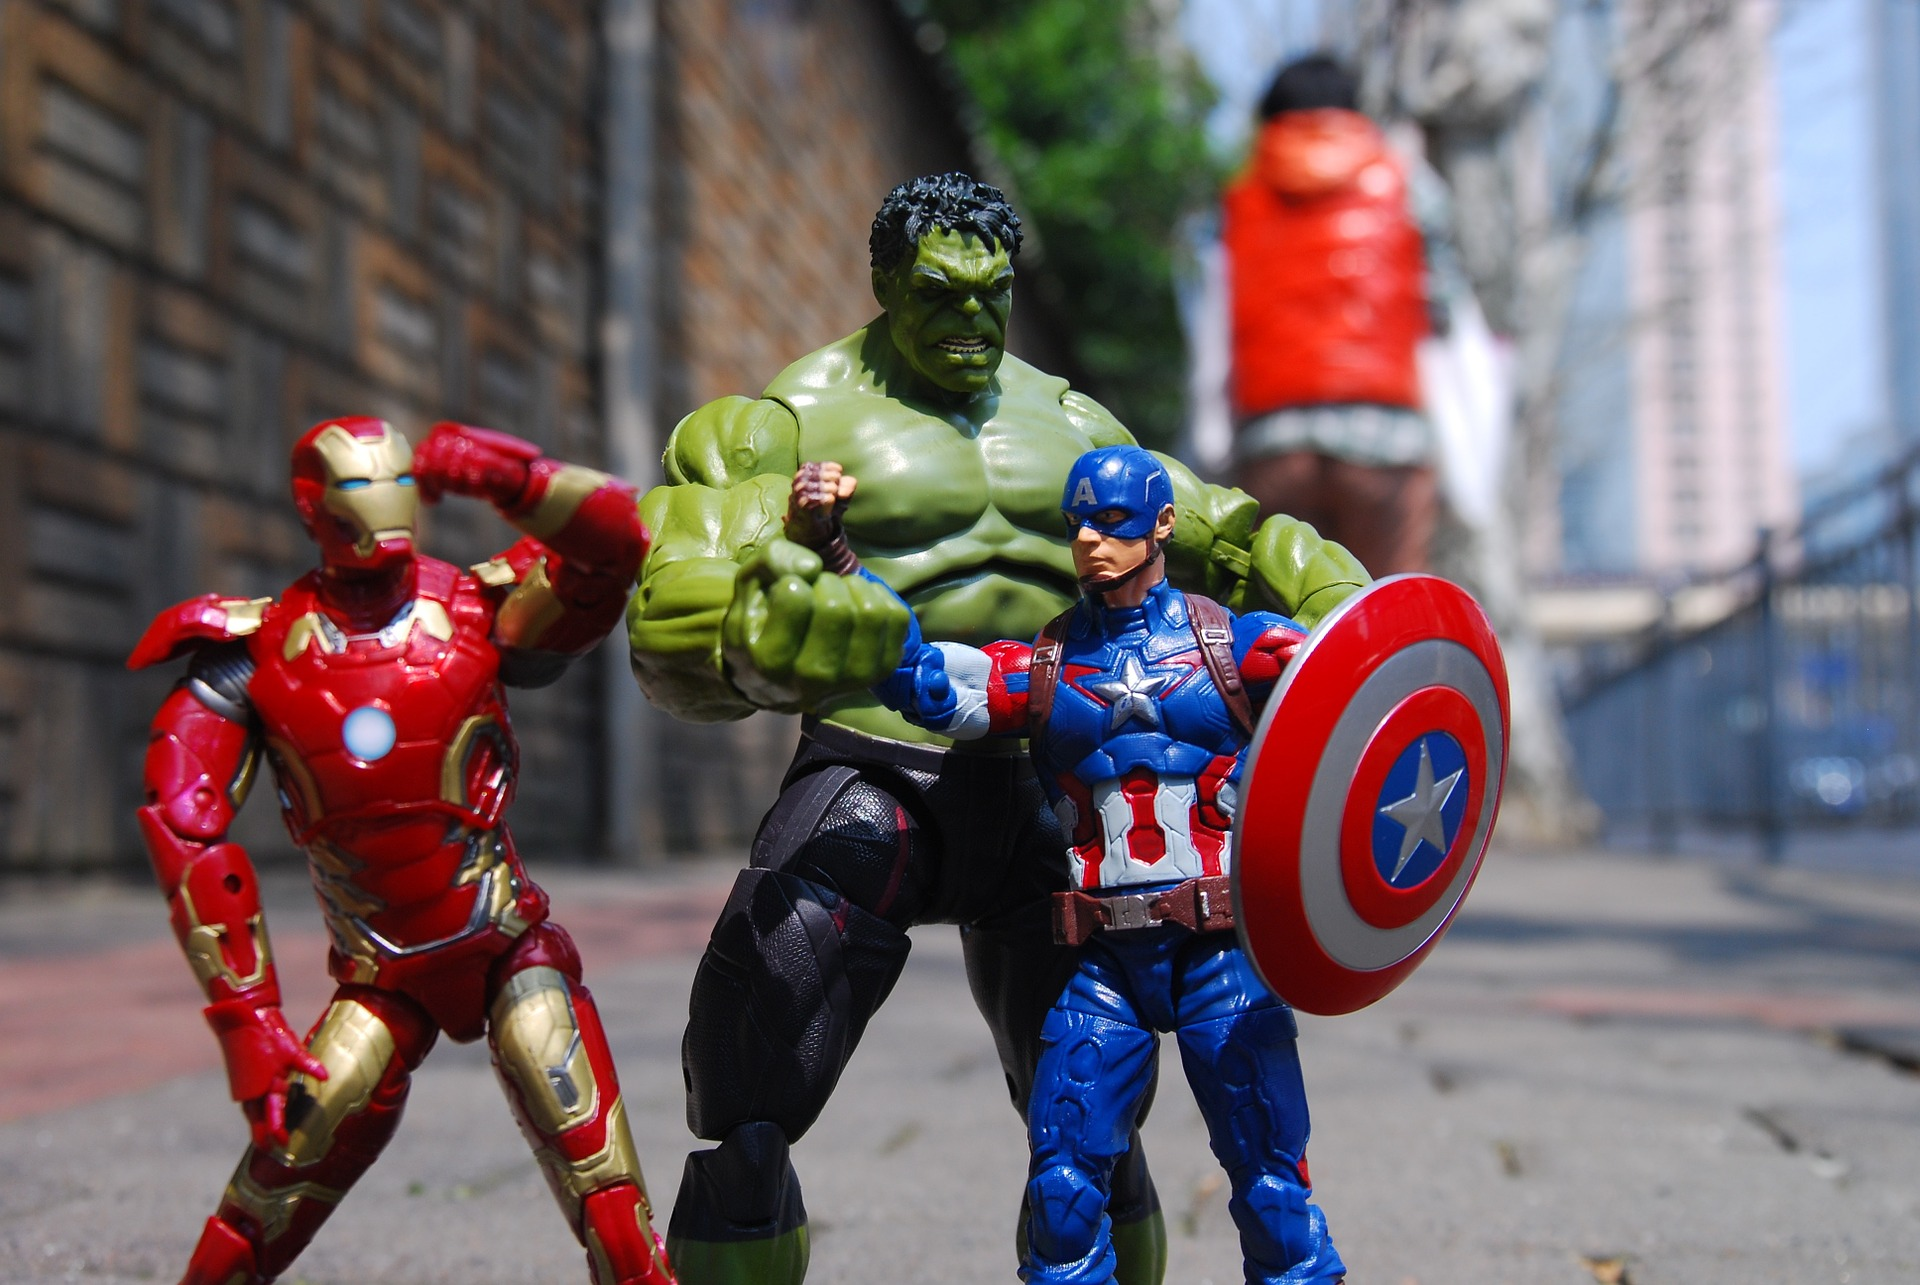 Aprendamos Marketing con Avengers